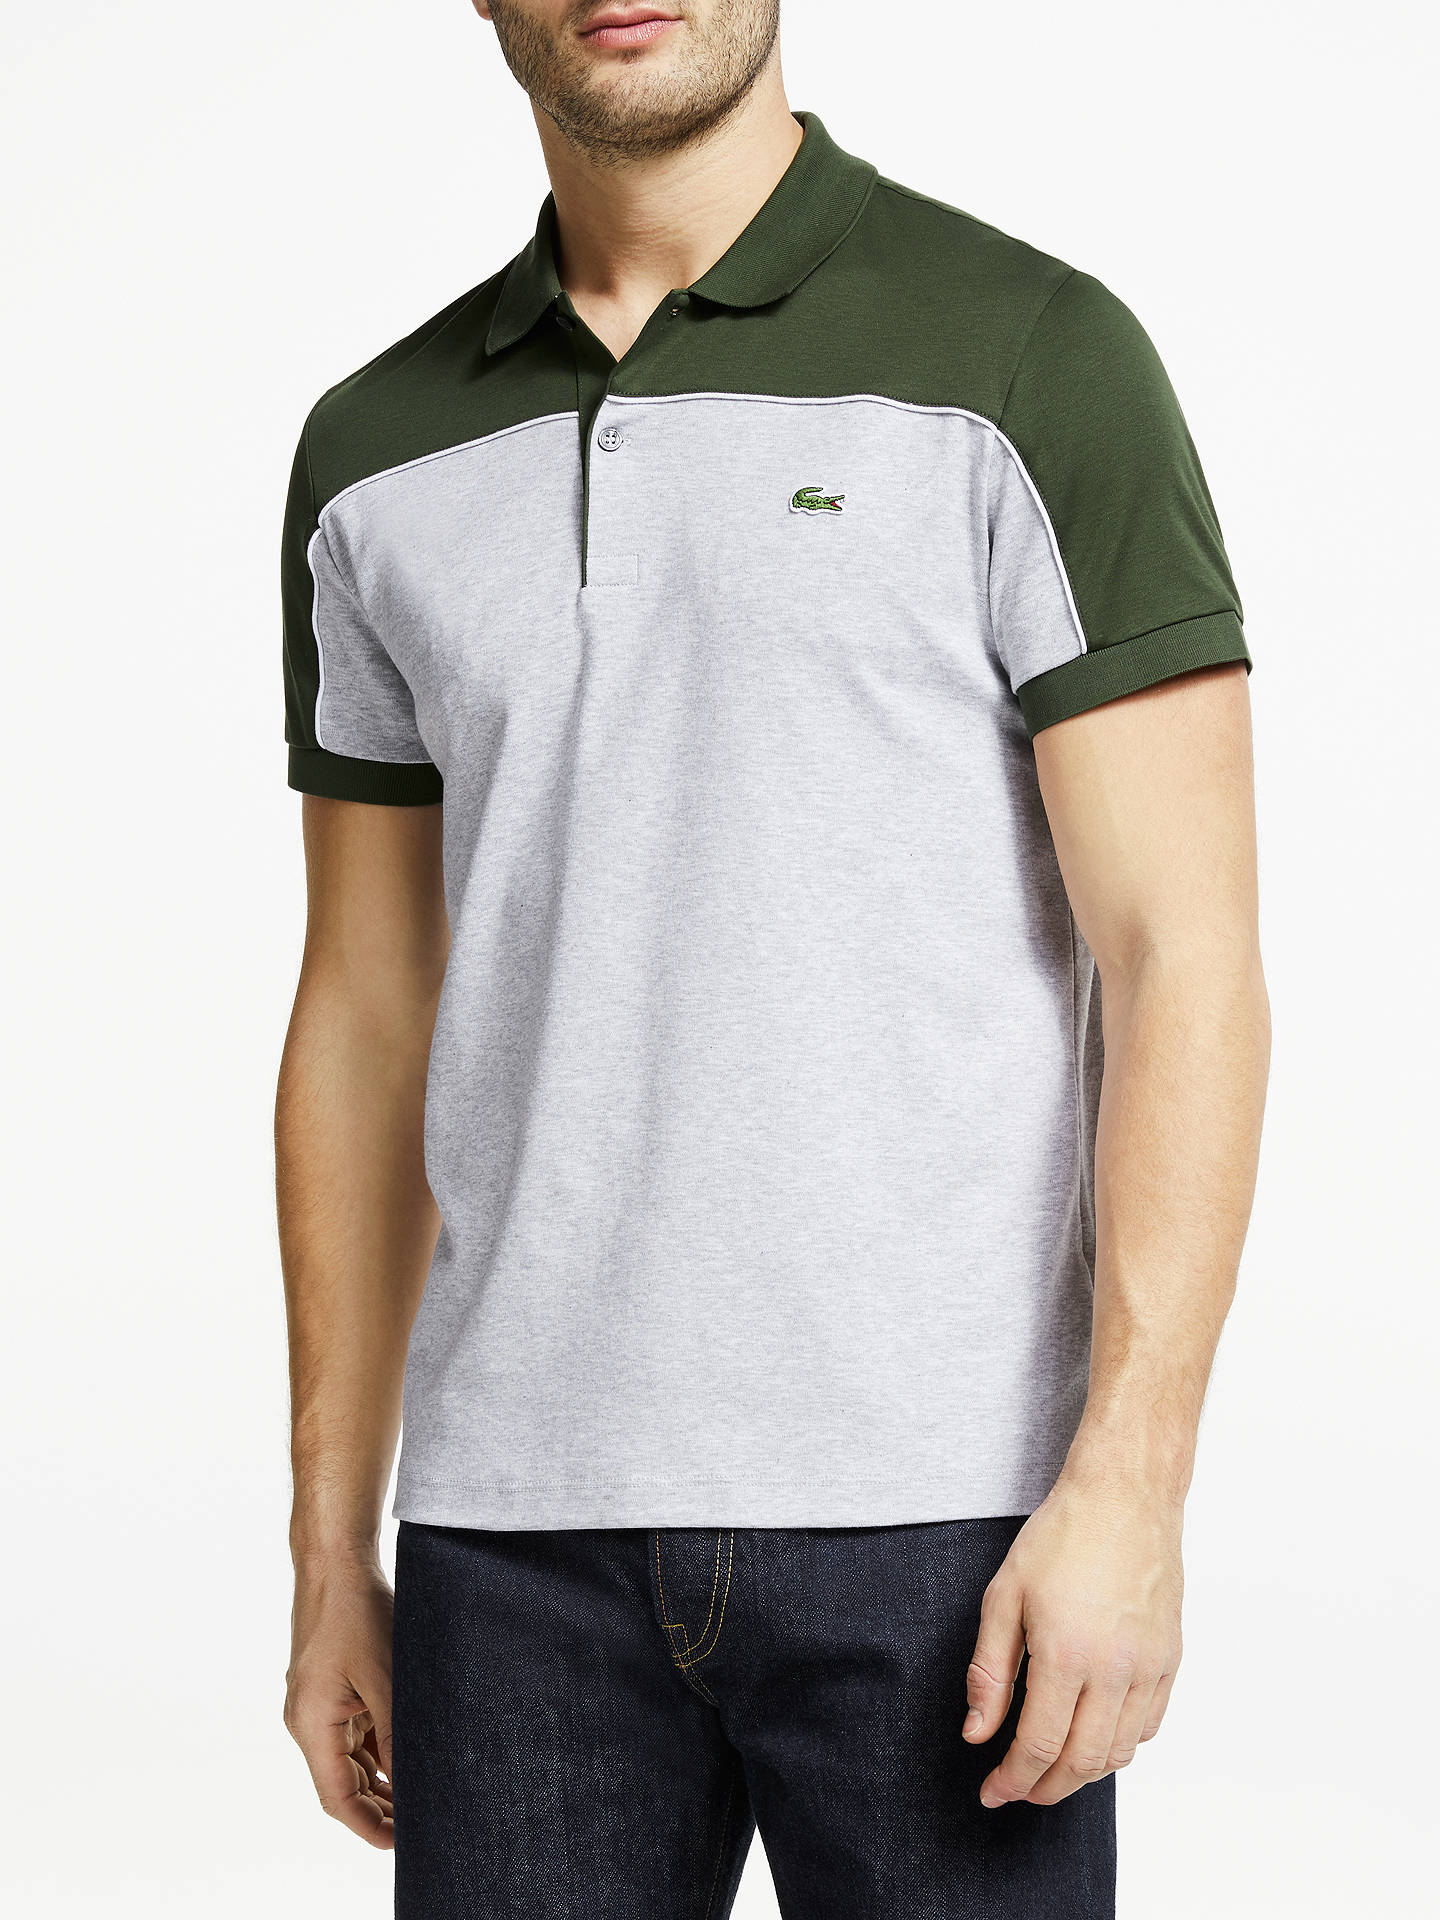 ce56d6b9 Lacoste Regular Fit Piped Colour Block Cotton Polo Shirt, Khaki/Grey ...